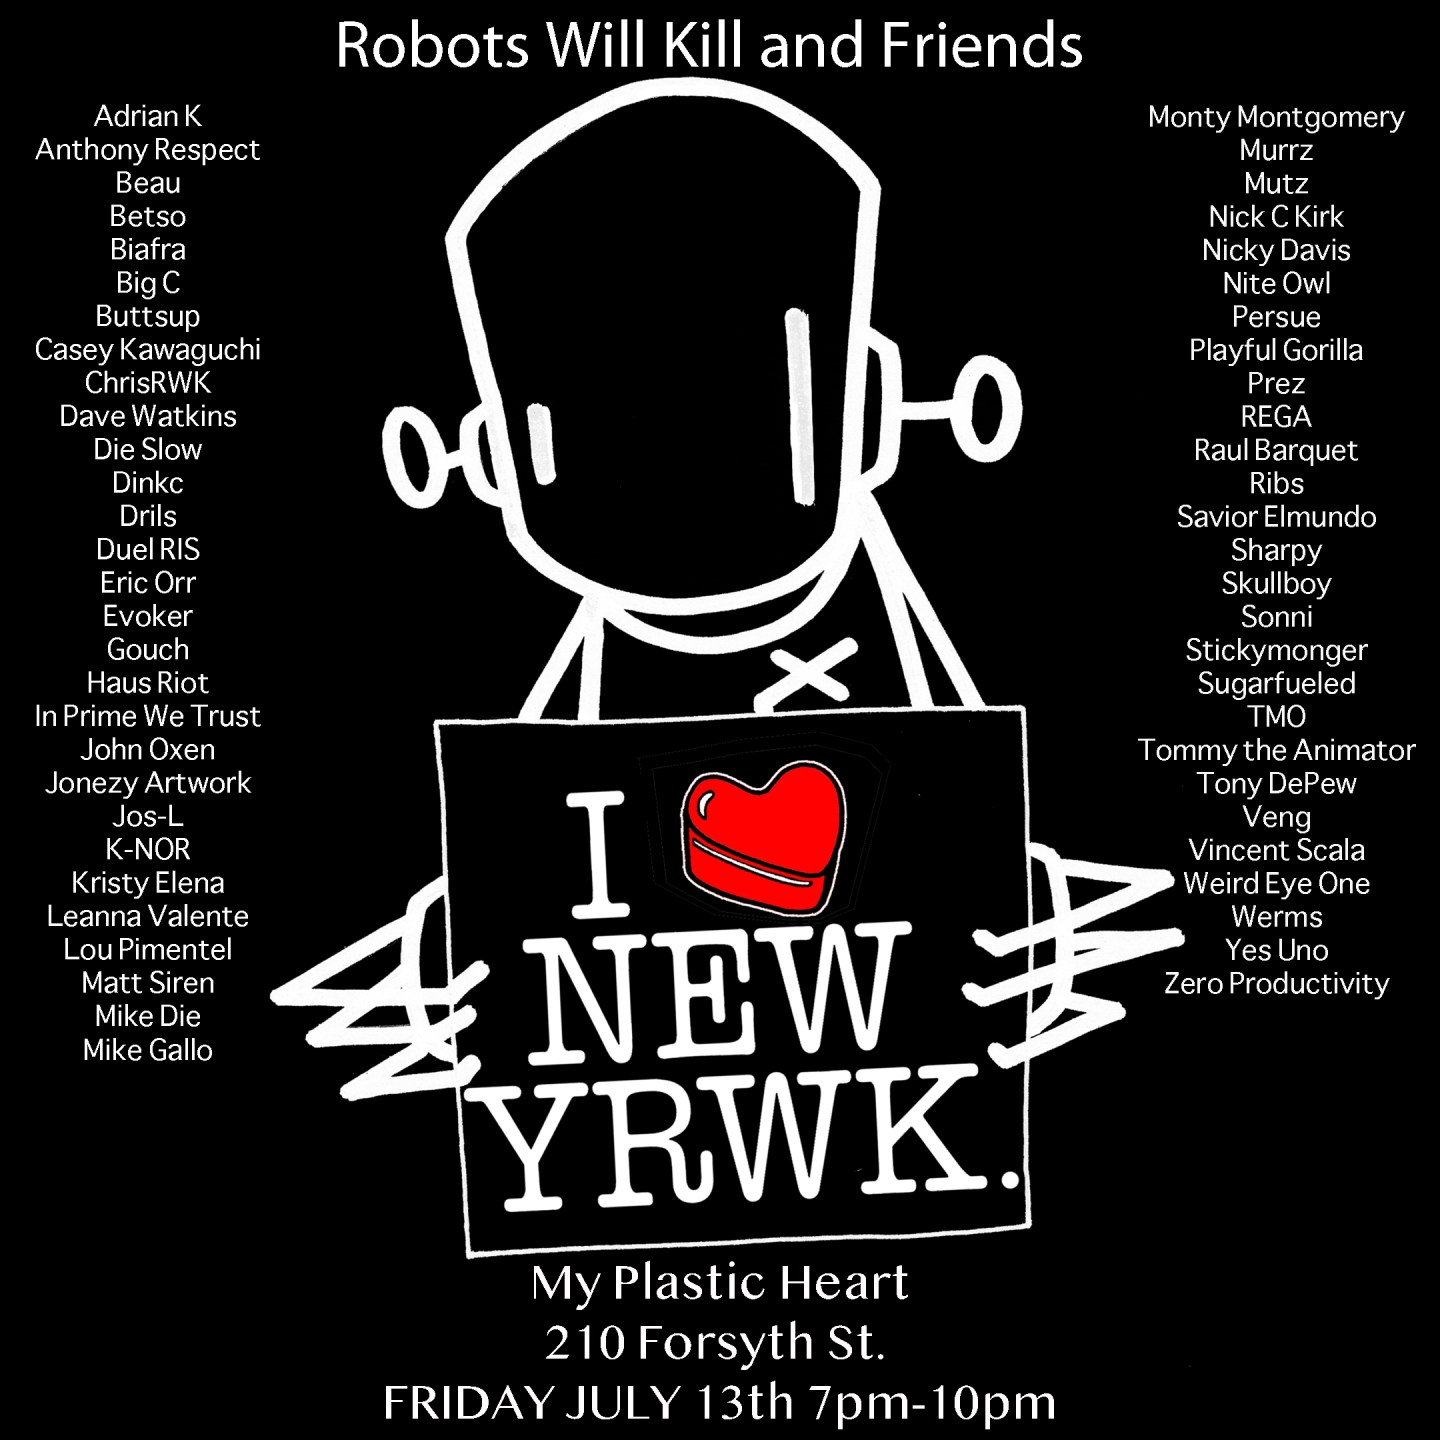 Robots Will Kill and Friends 2018 opens Friday 7/13